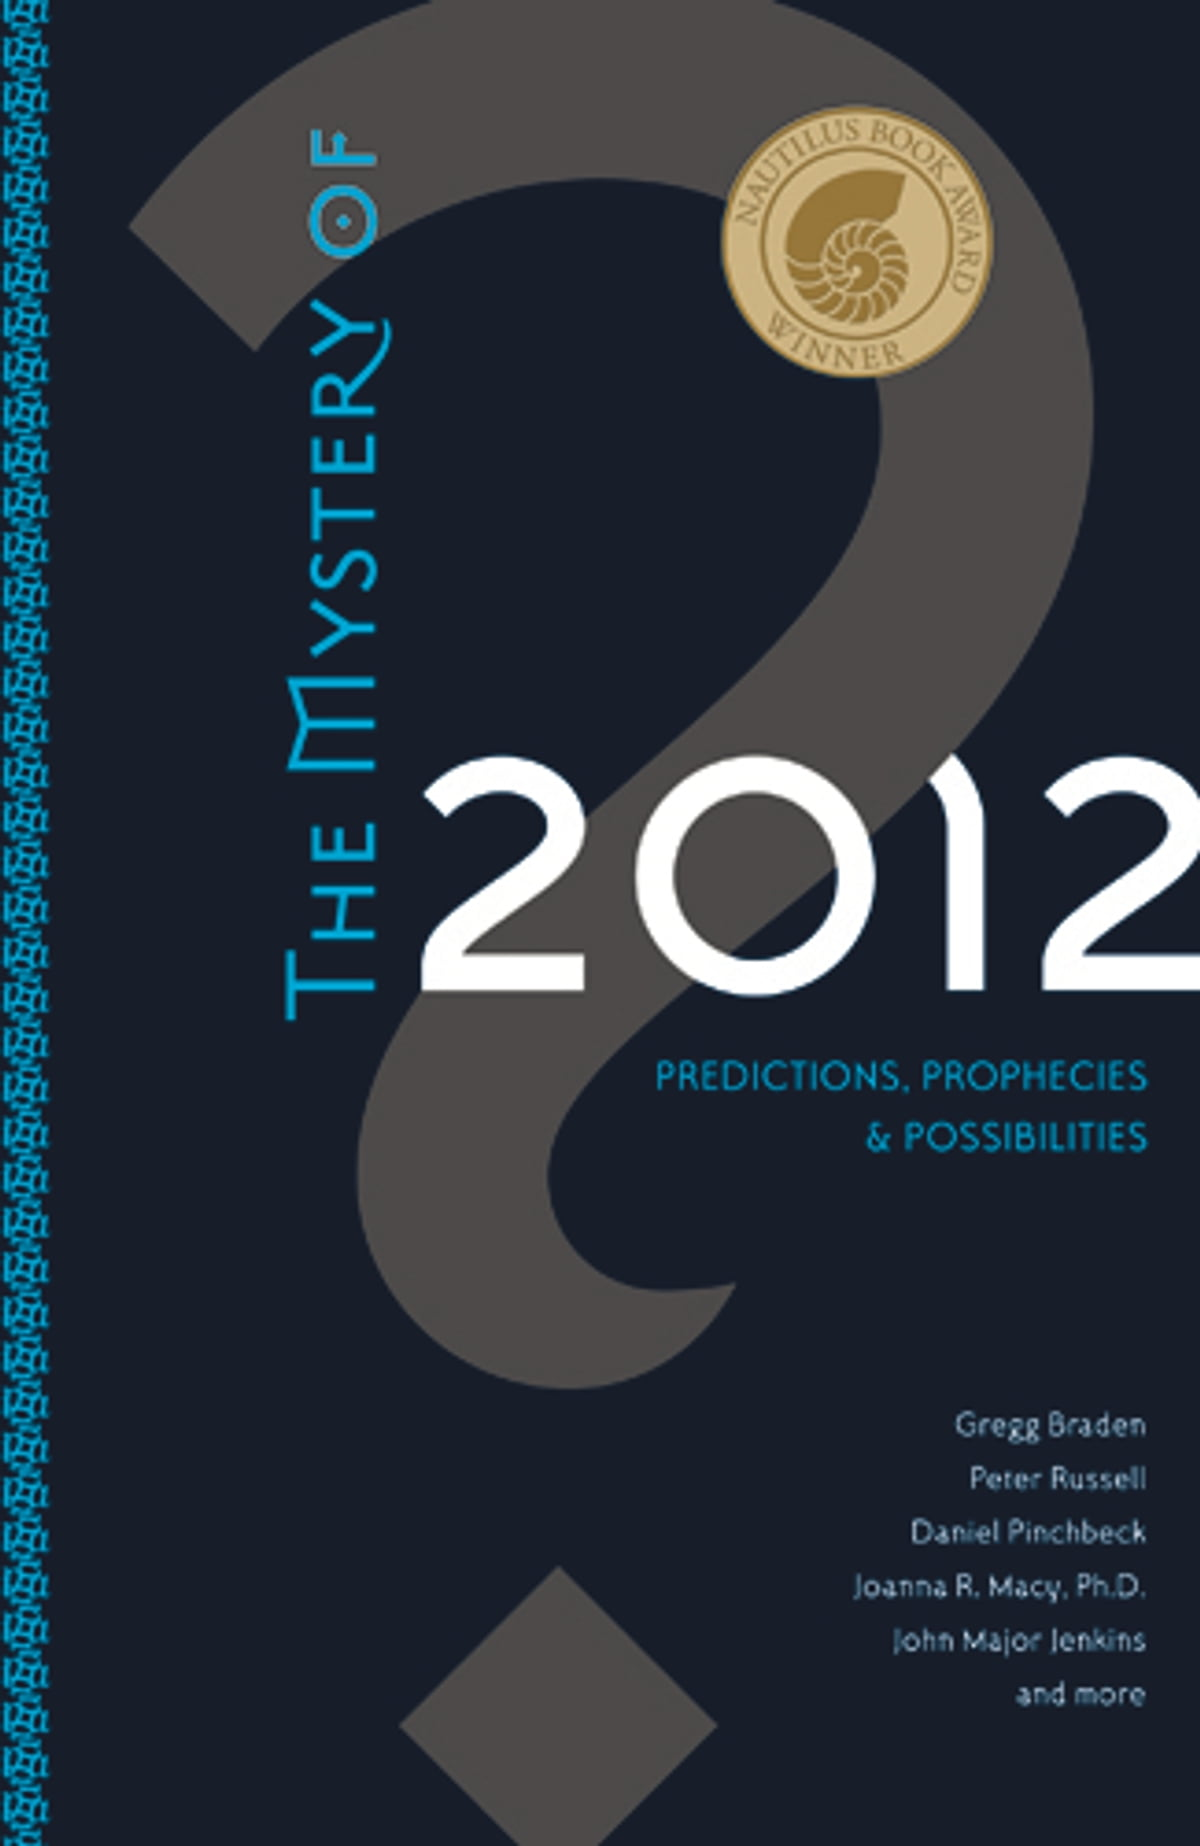 Gregg Braden Libros Gratis The Mystery Of 2012 Ebook By Gregg Braden Daniel Pinchbeck John Major Jenkins Peter Rusell Meg Blackburn Losey Barbara Marx Hubbard Jean Houston James